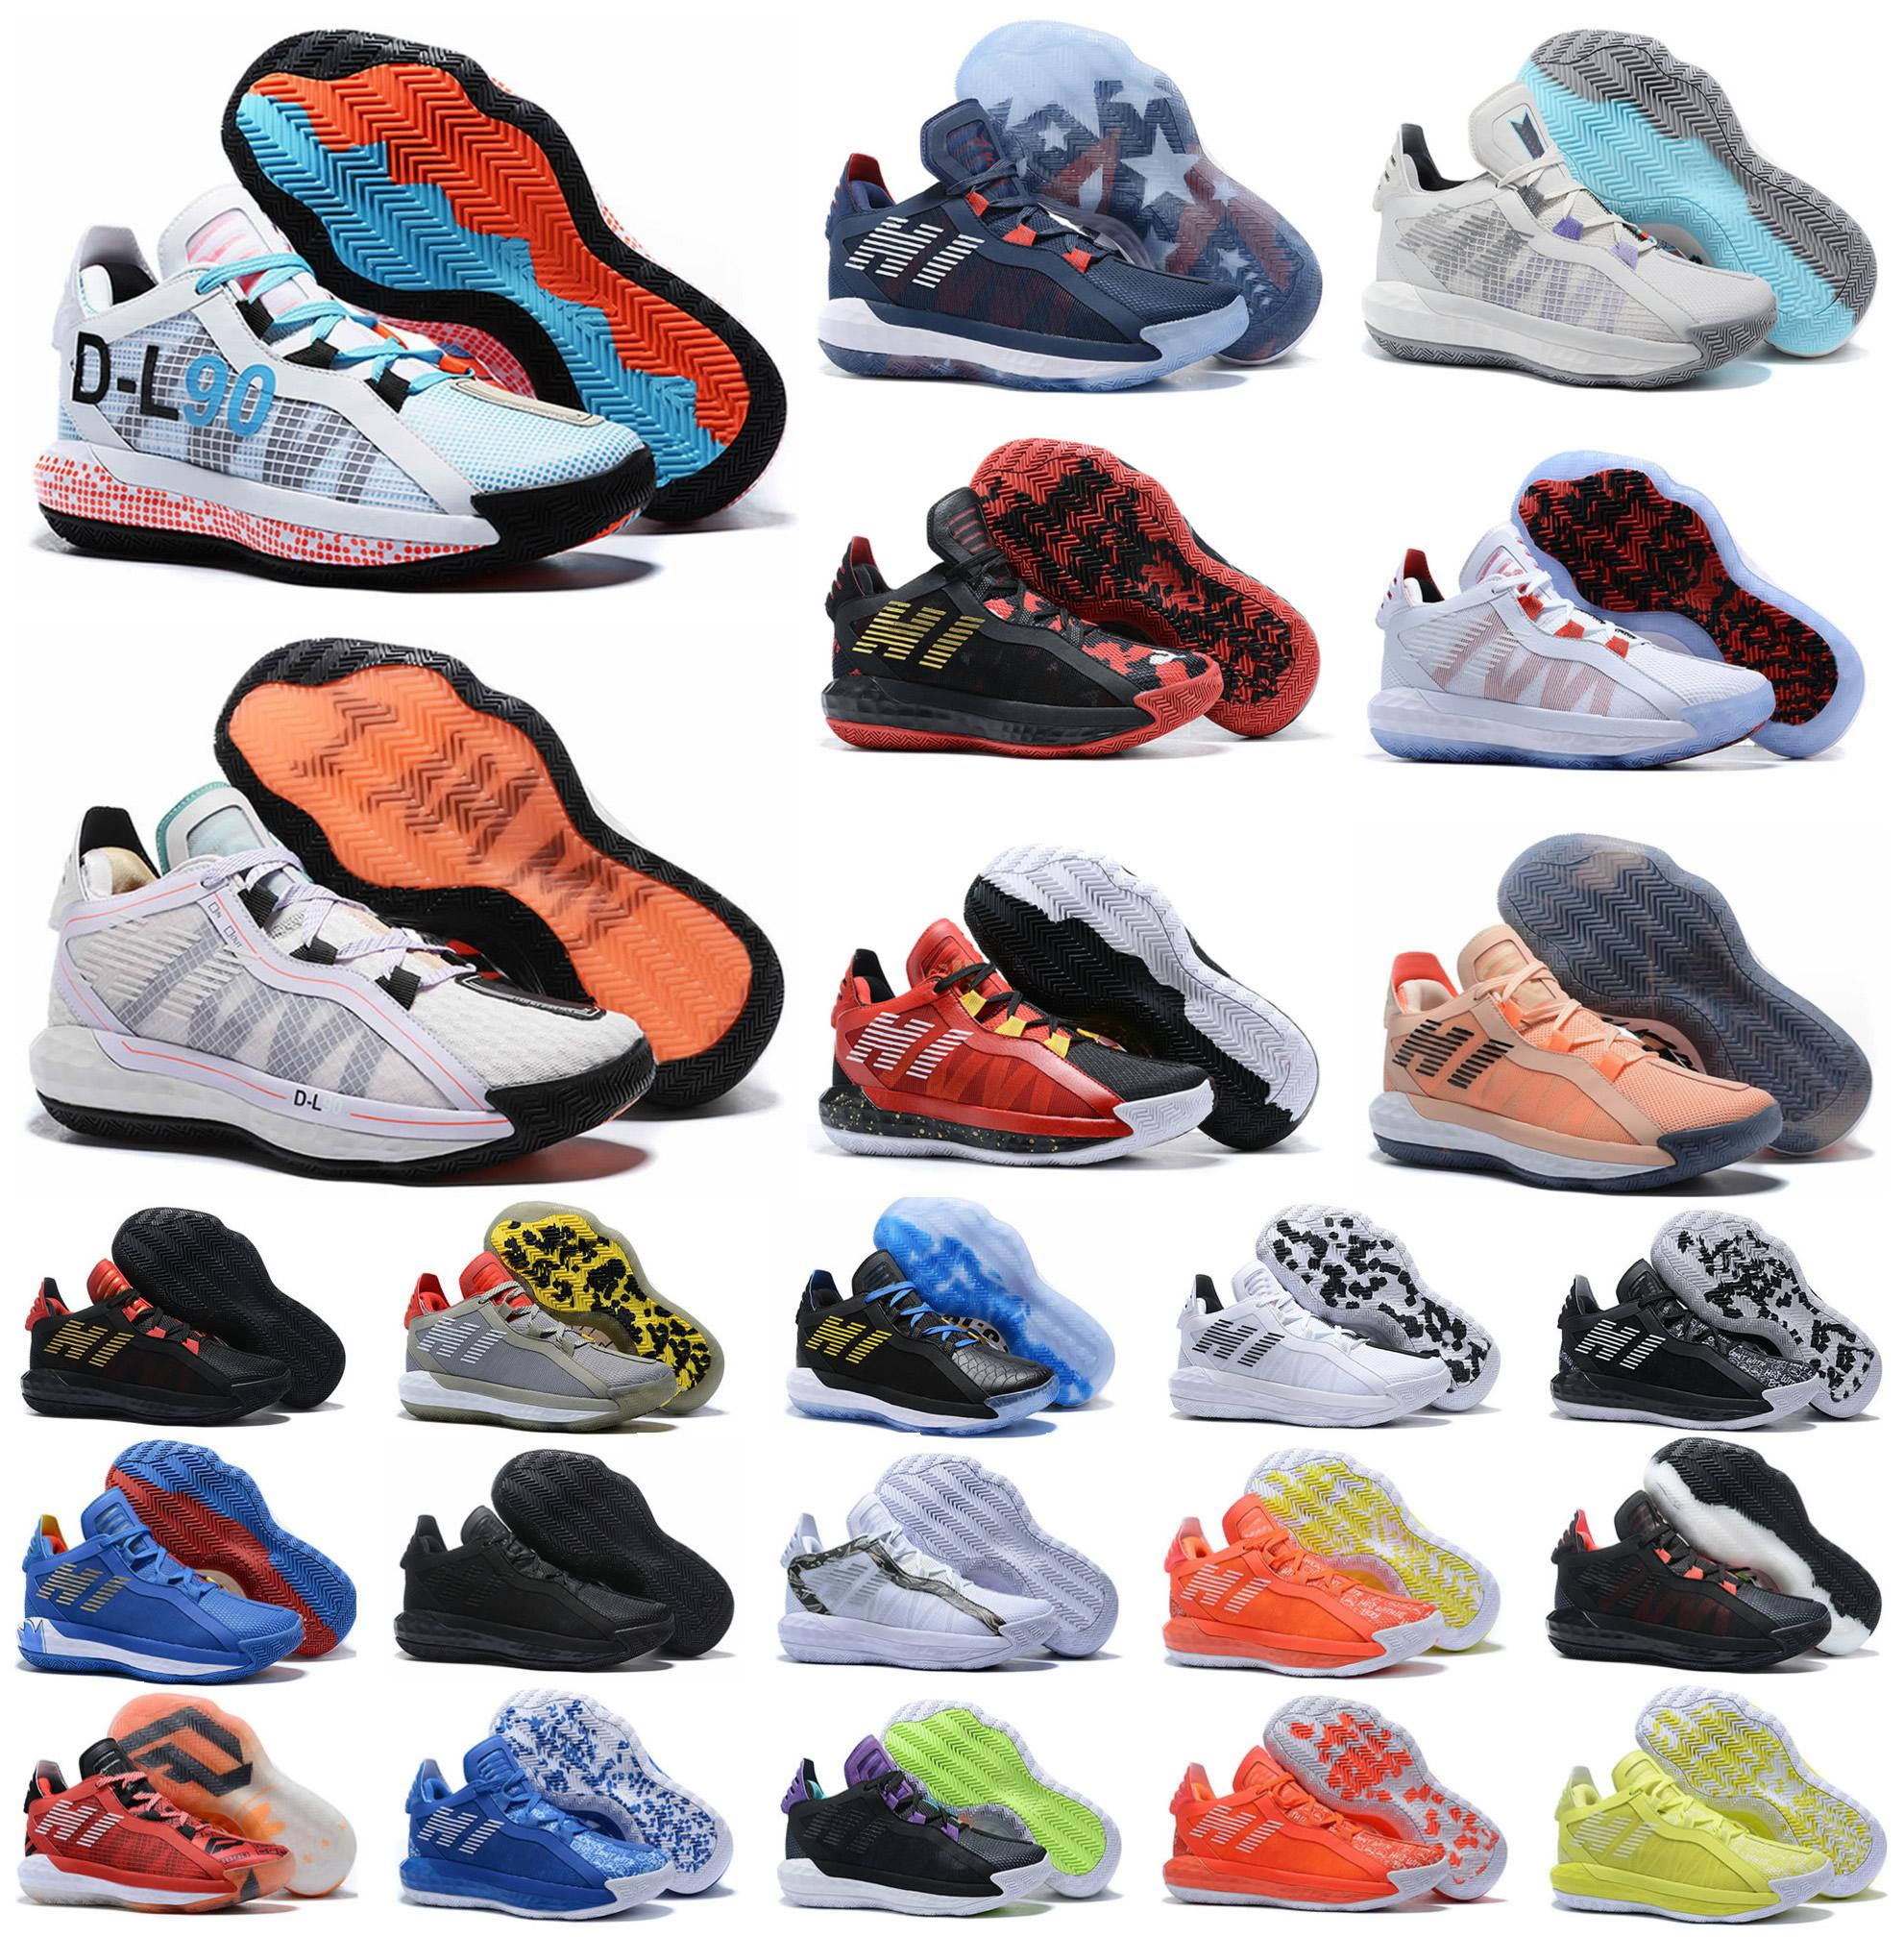 2020 New Damian Lillard Vi Suede 6s 6 6th Chinese New Year Bruce Lee Basketball Shoes Mens Shoes Sports Dame Trainers Sneakers 40 46 4e Basketball Shoes Loafers For Men From Themaxshoes 47 61 Dhgate Com